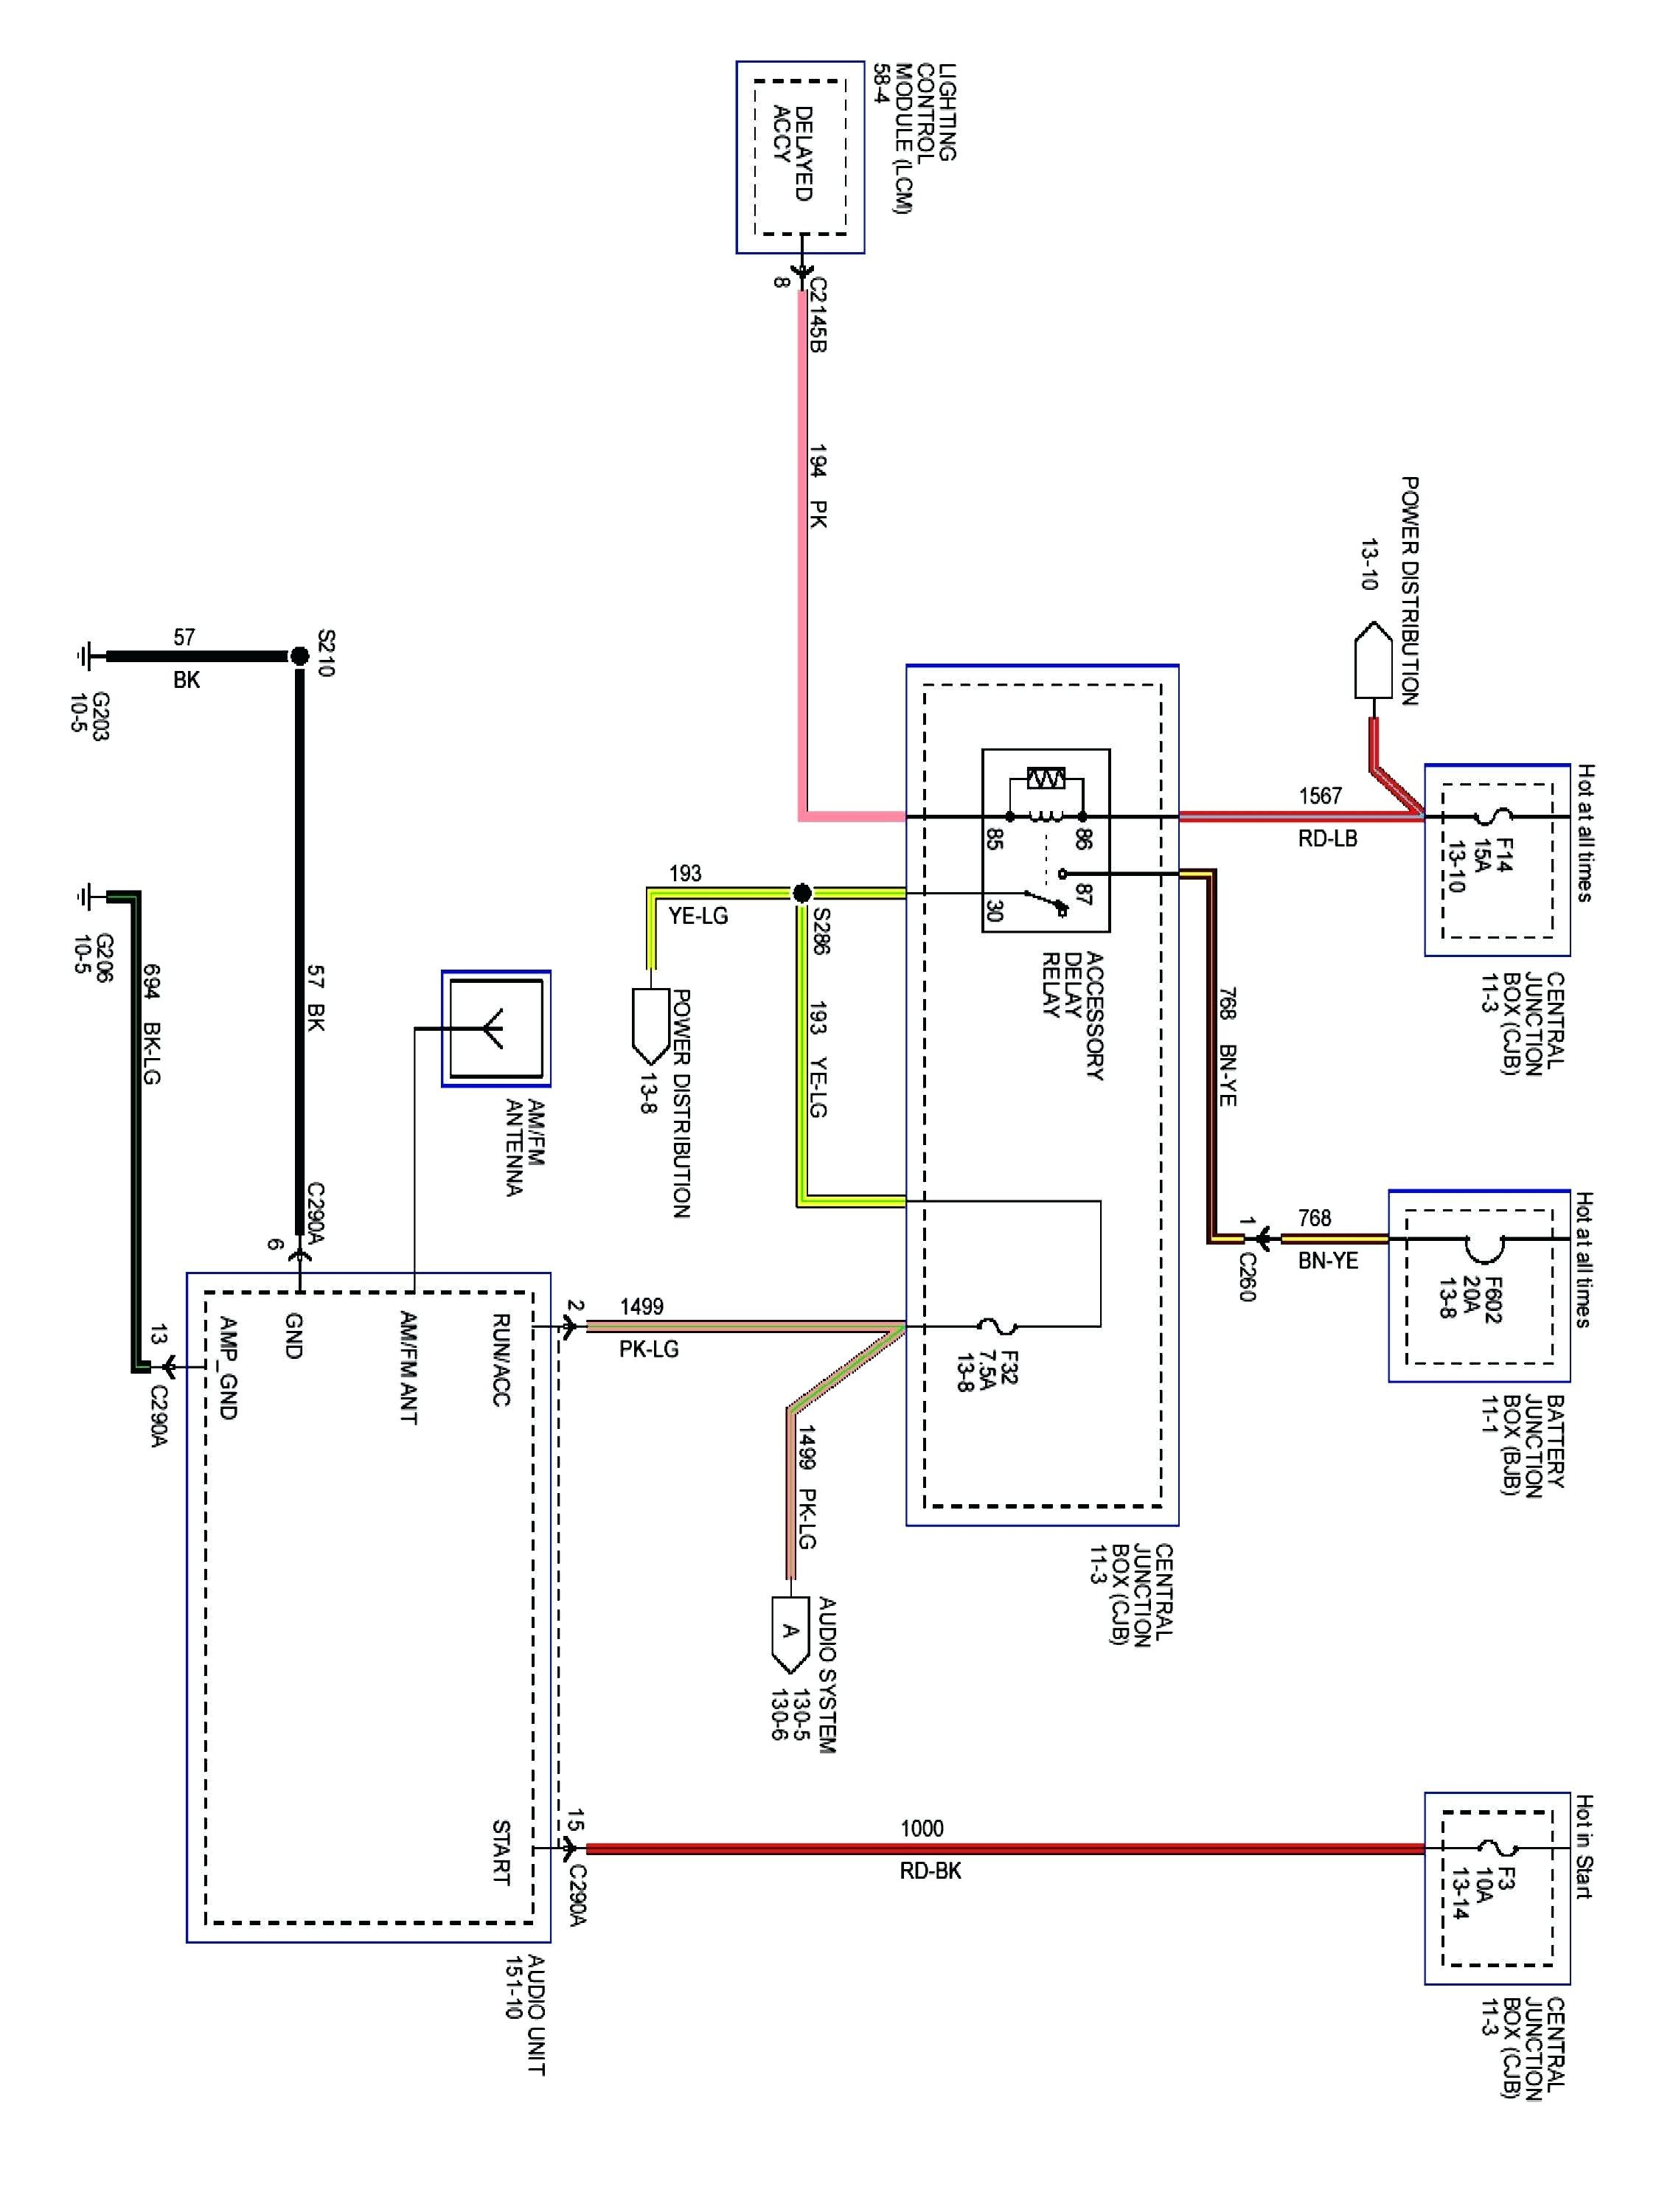 DIAGRAM] 1990 Lincoln Town Car I Please Have A Wiring Diagram FULL Version  HD Quality Wiring Diagram - KITPROGSCHEMATIC8127.BEAUTYWELL.ITkitprogschematic8127.beautywell.it